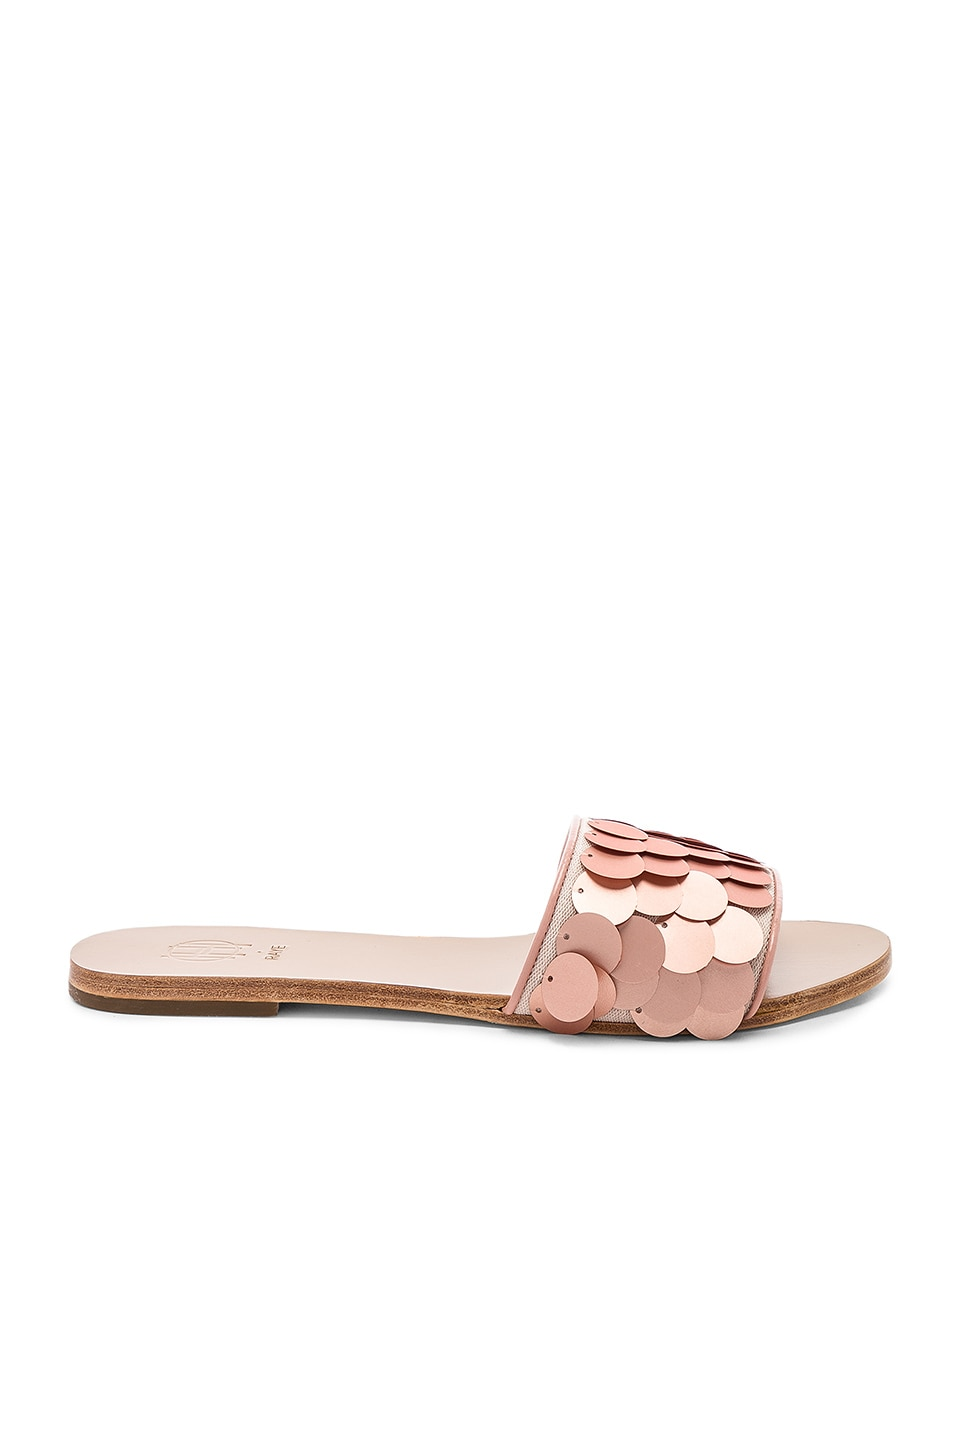 RAYE x House Of Harlow 1960 Leilani Slide in Blush